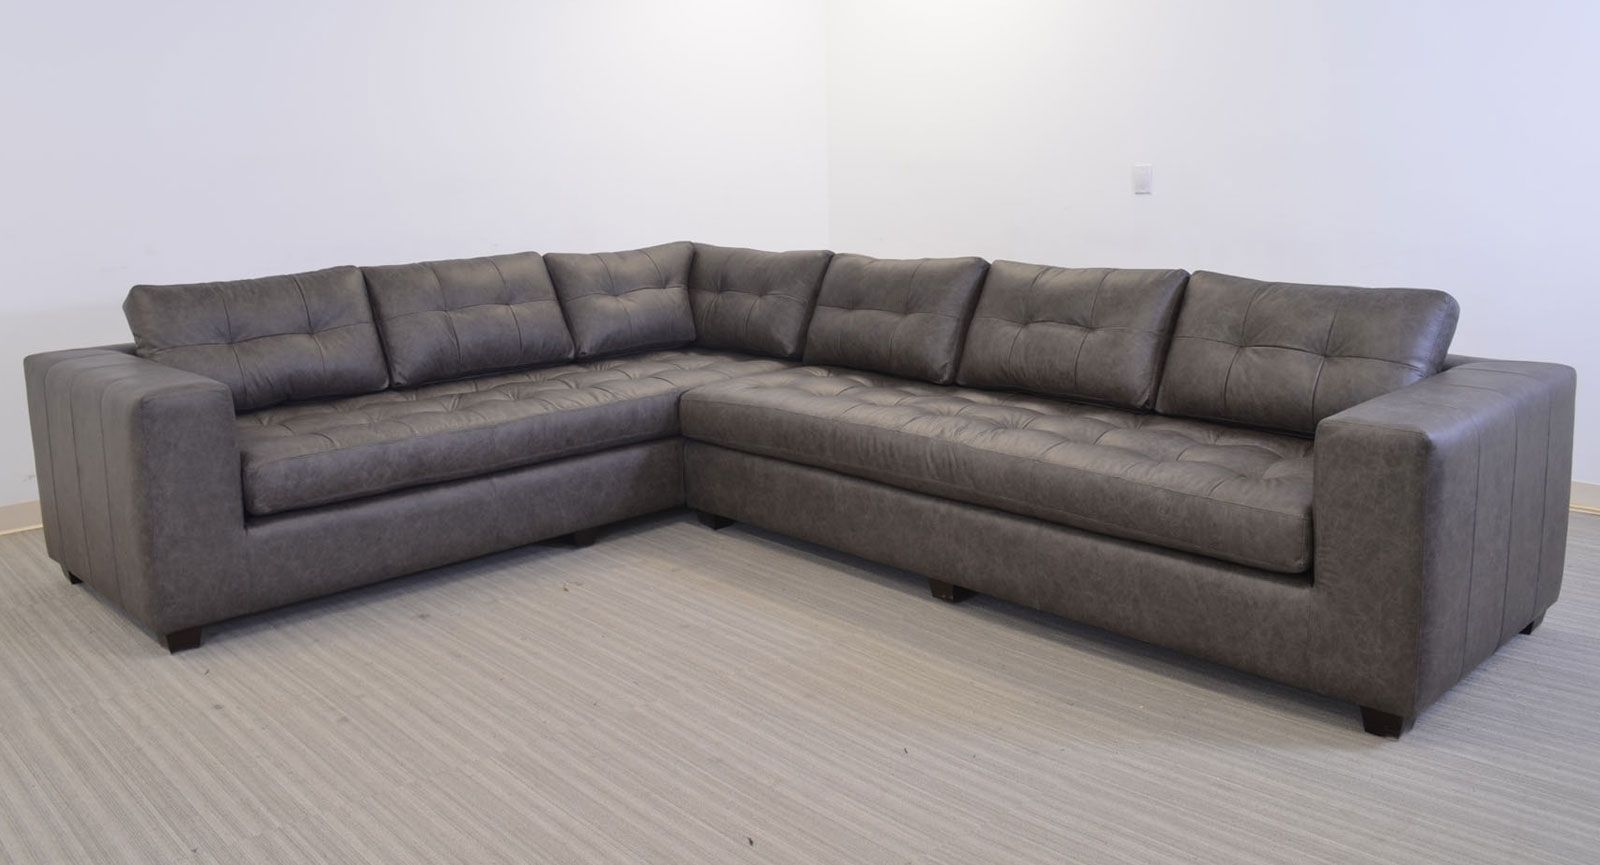 Gev Sofa Sectional Grey Leather The Leather Sofa Company Clean Line Large Scale Contemporary Style Multi Best Leather Sofa Sofa Company Grey Leather Sofa